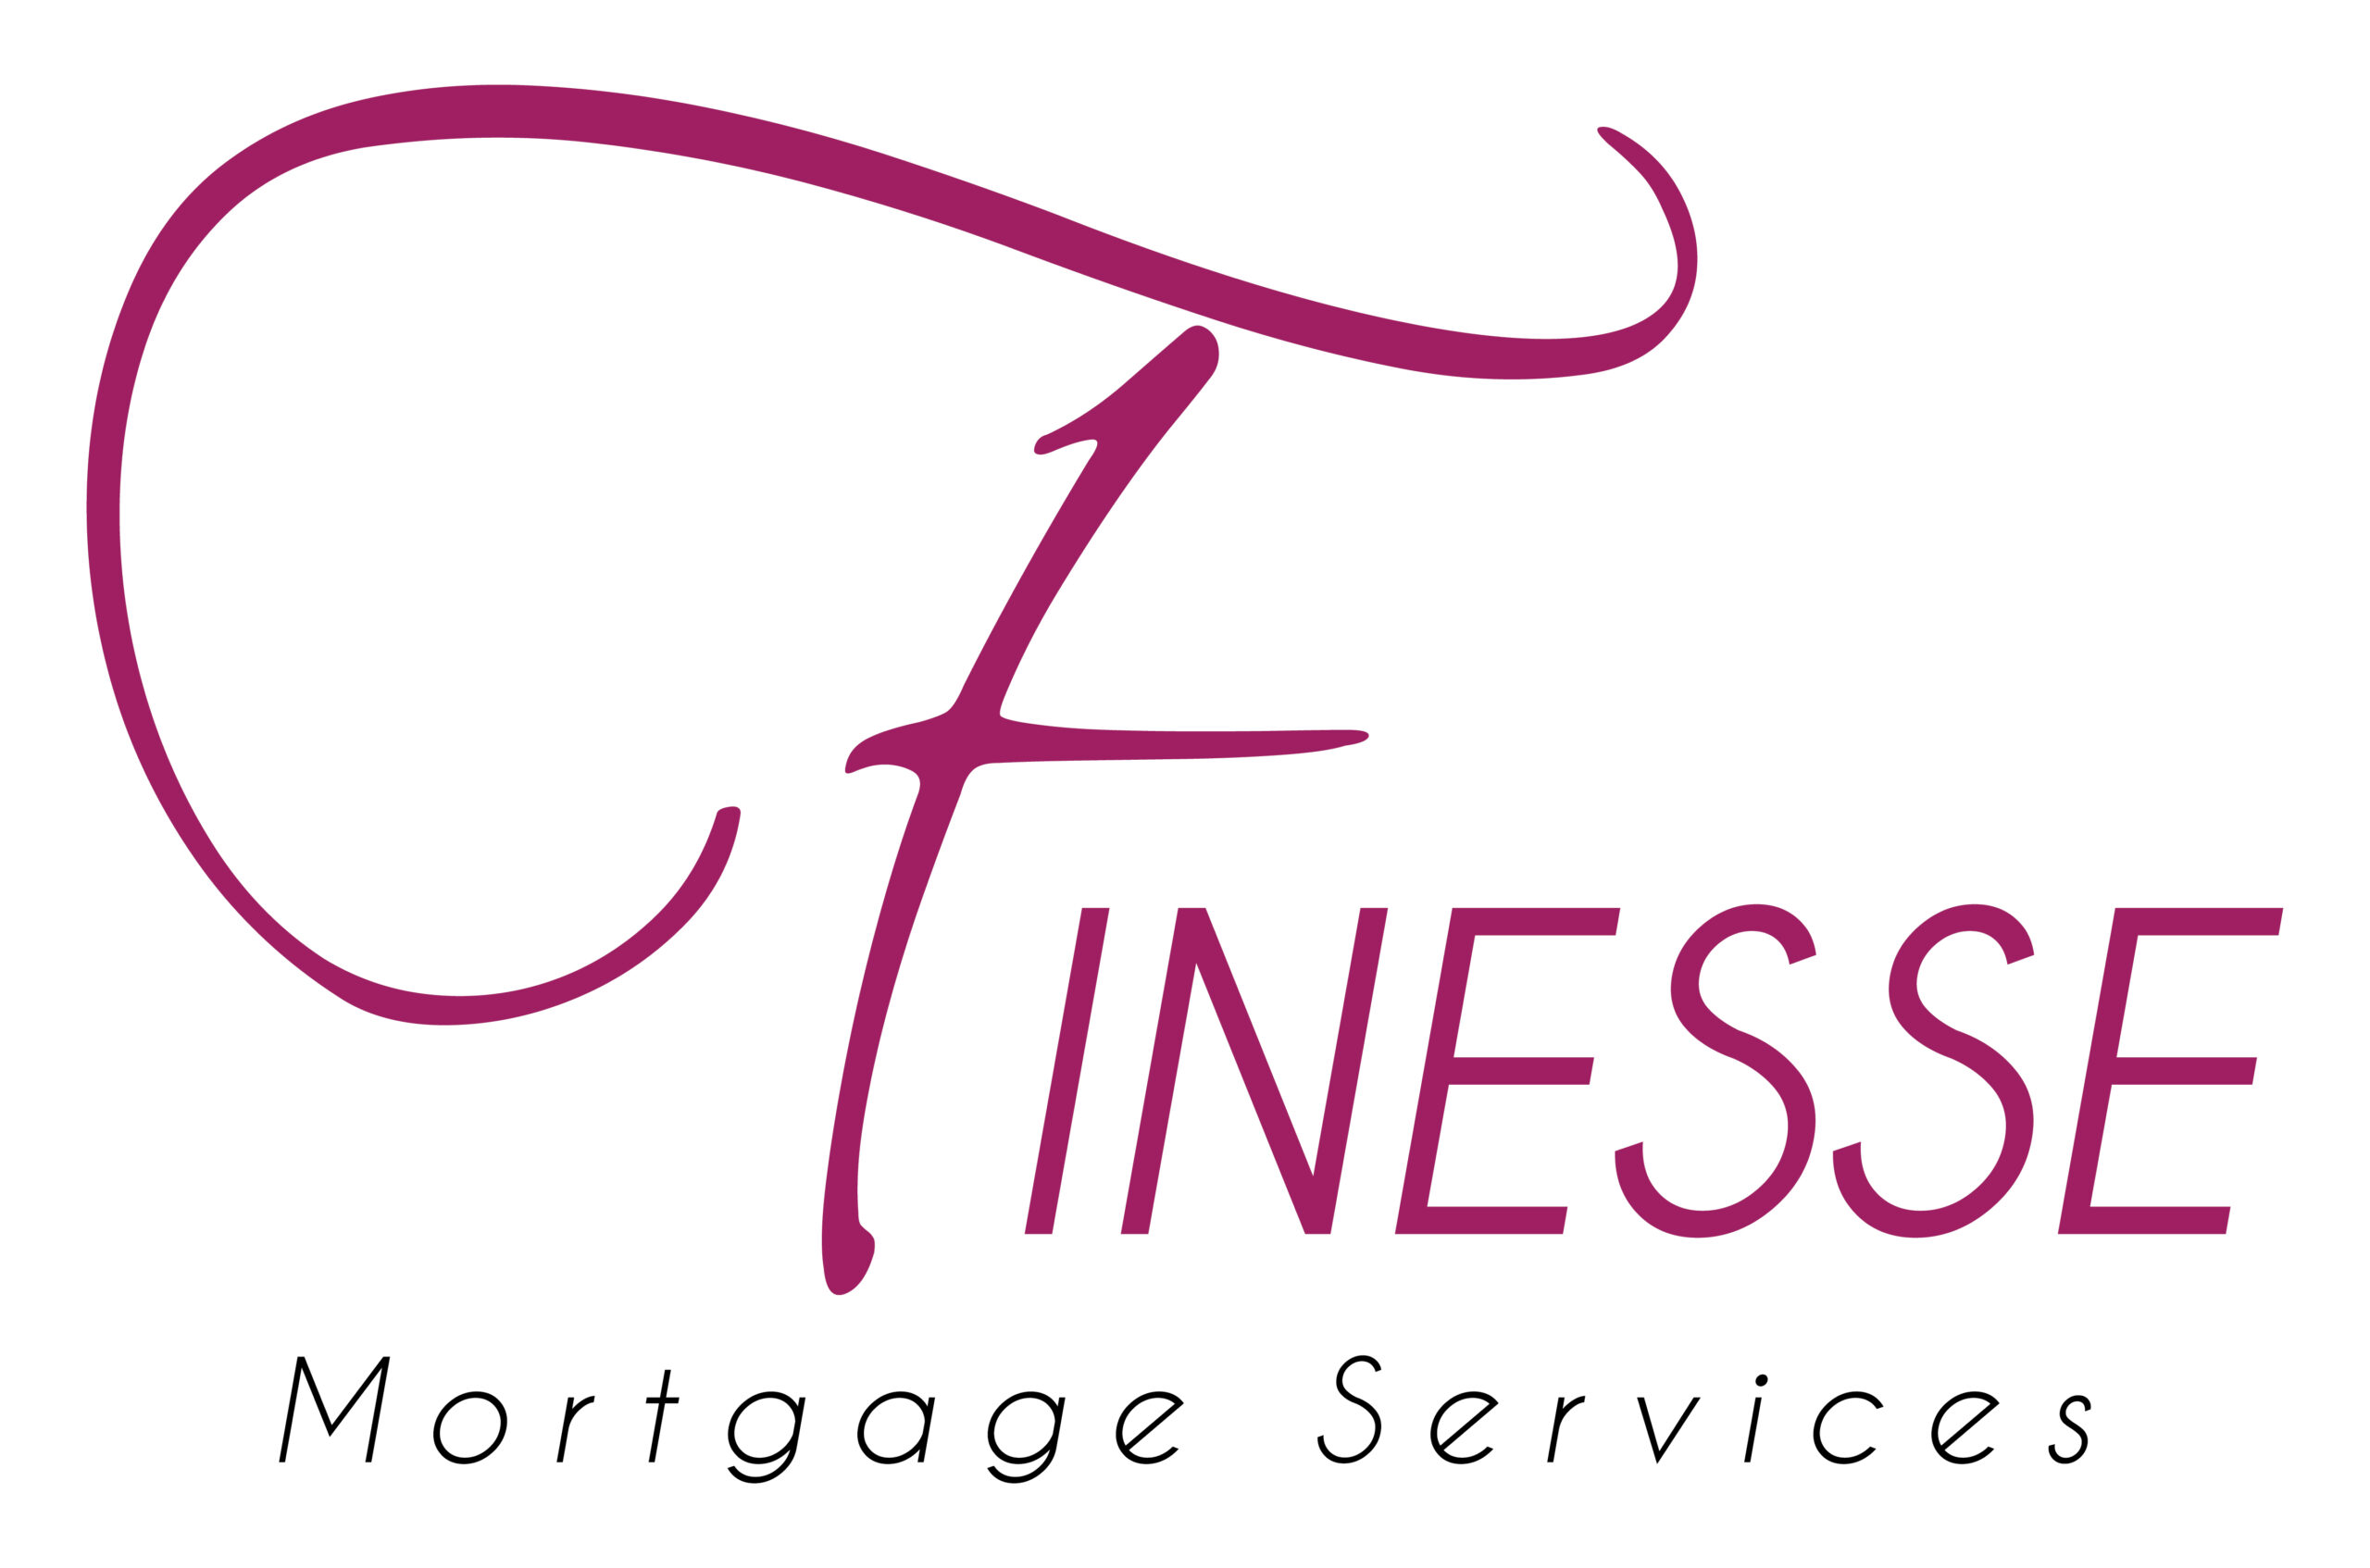 Finesse Mortgages